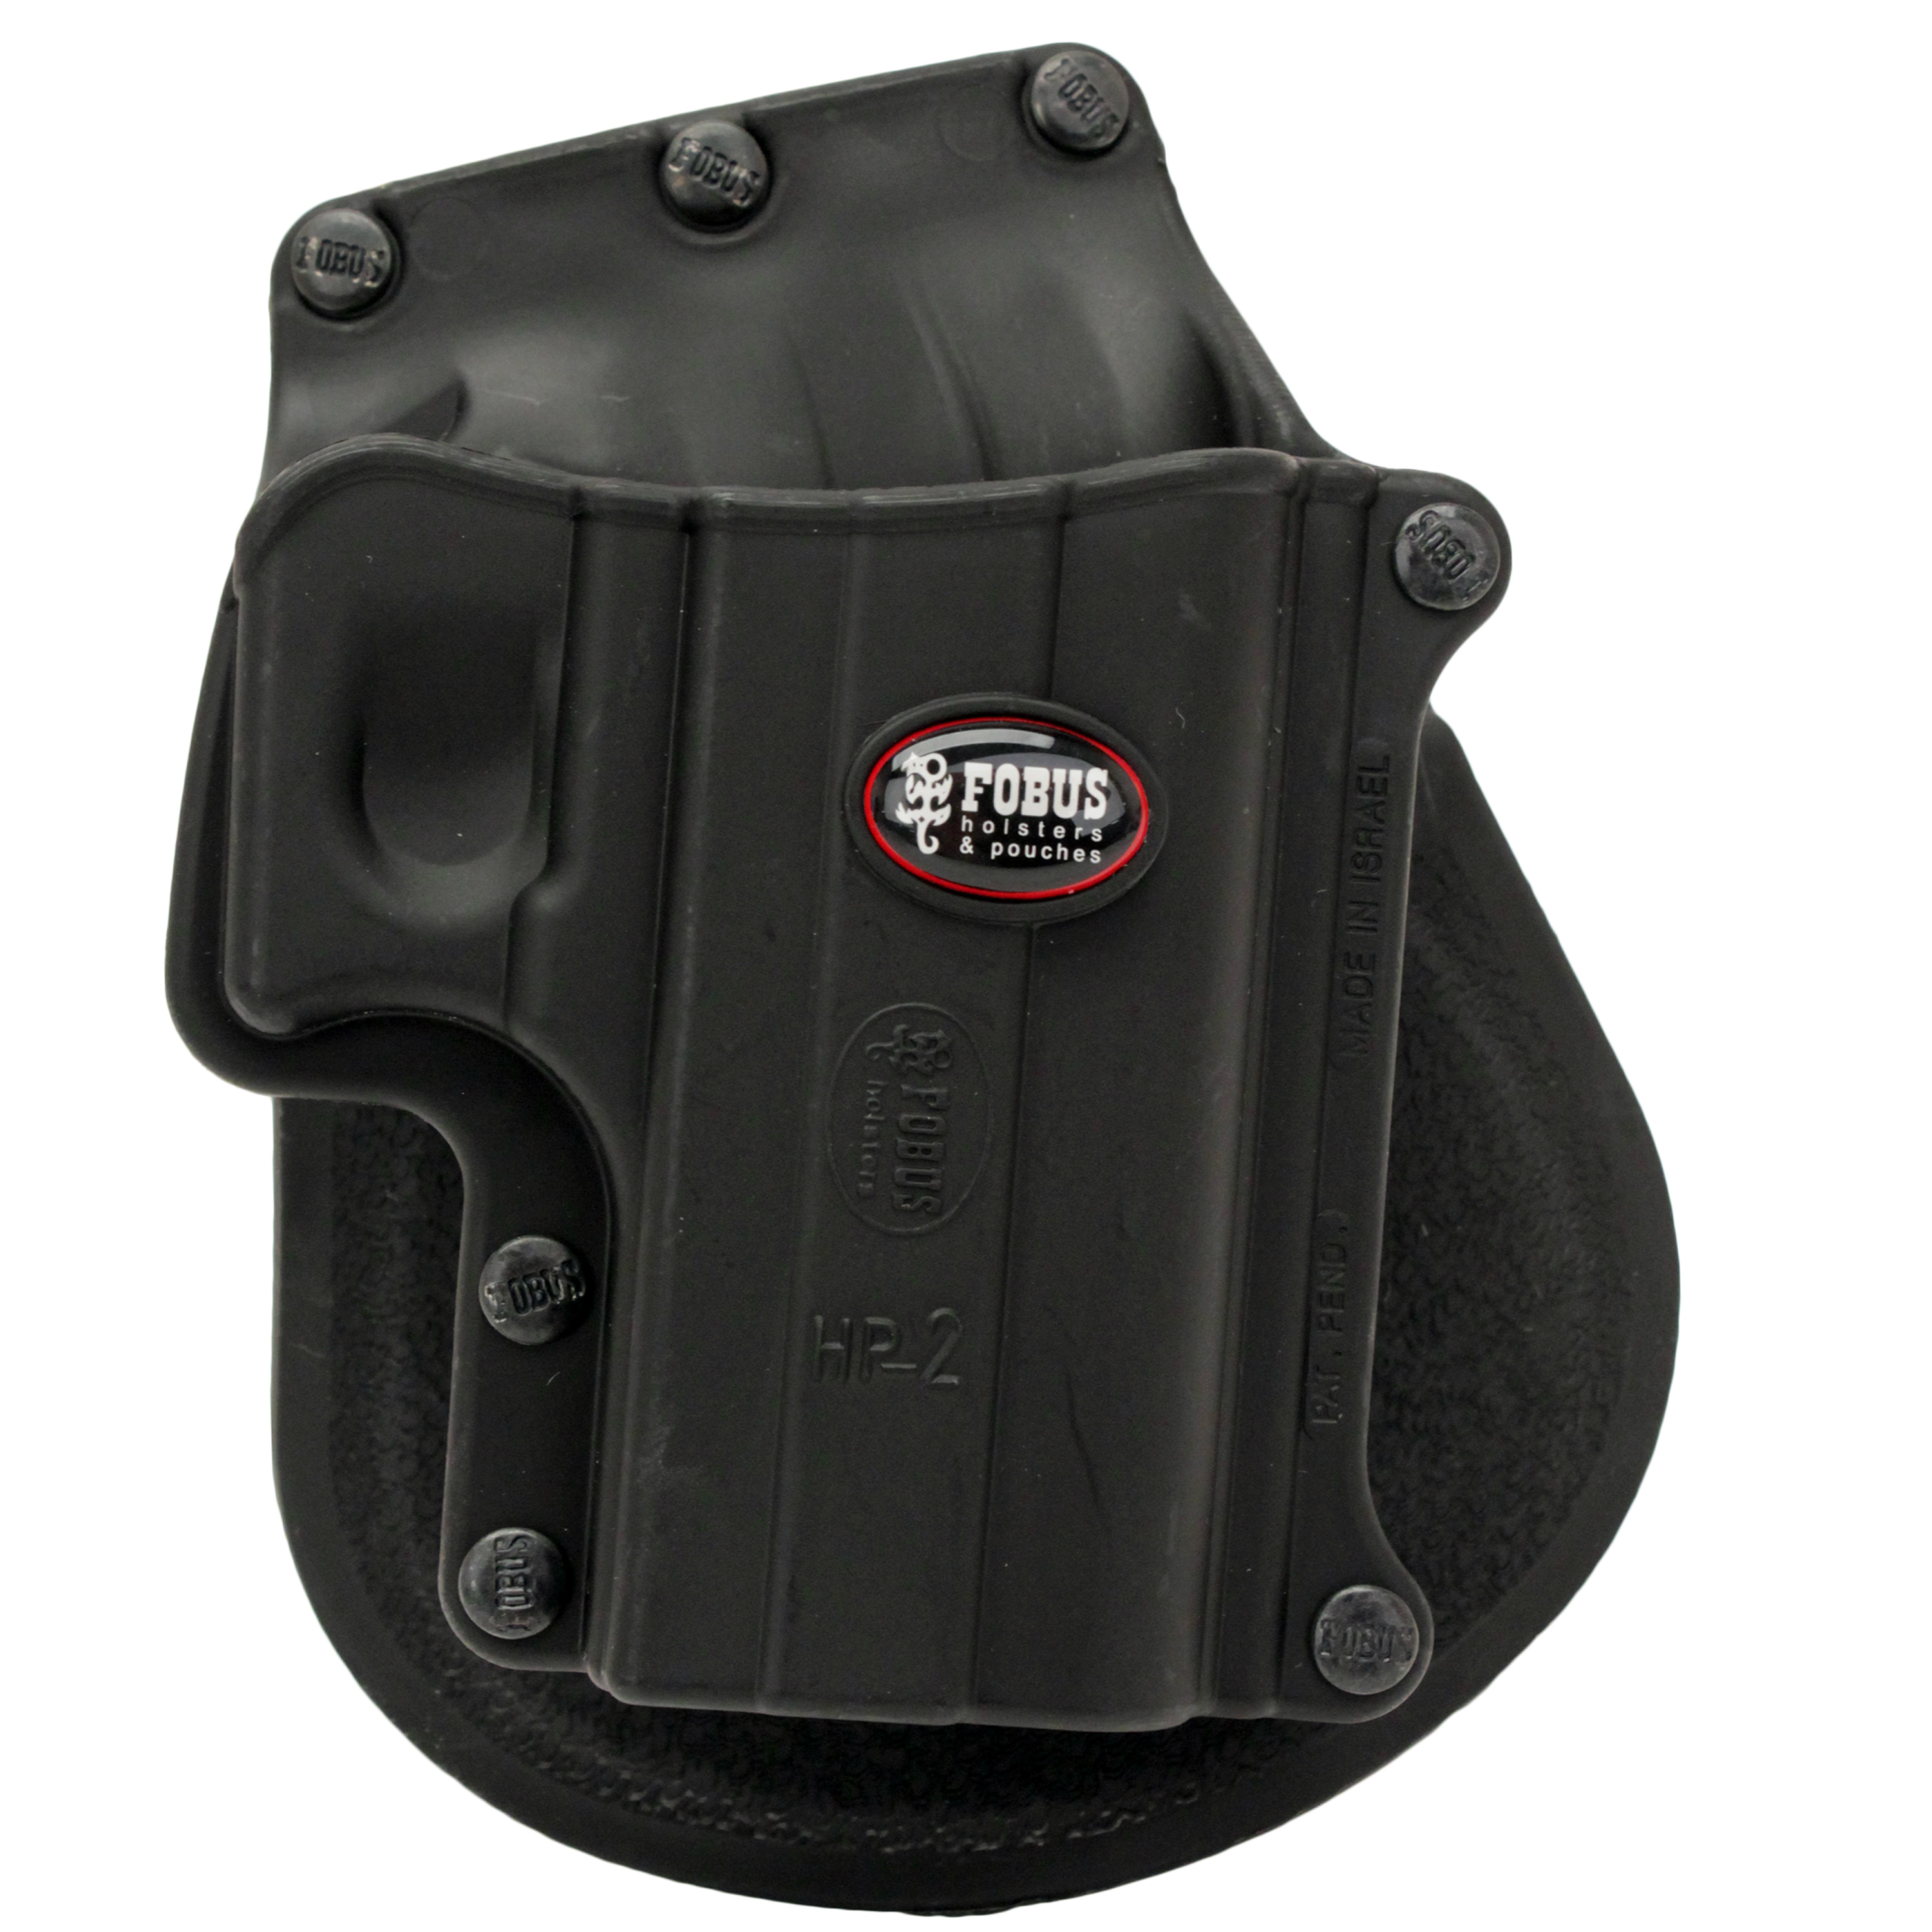 Details about Fobus Standard Paddle Holster For Hi-Point  380 & Bersa  BPCC-Right Hand-HP2